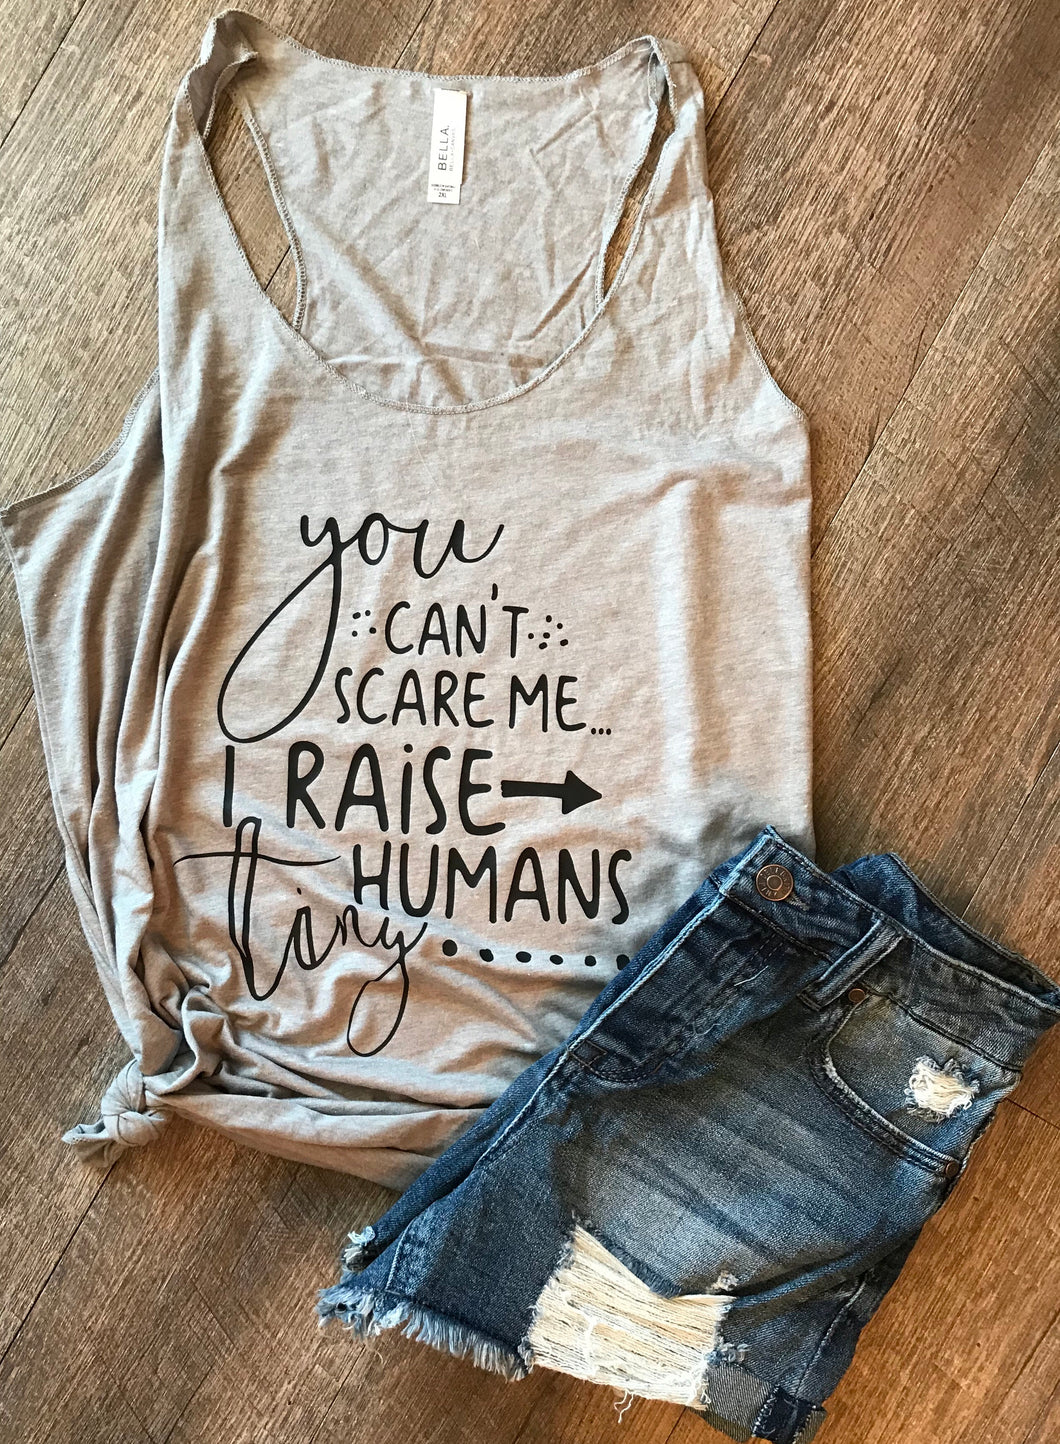 You can't scare me I raise tiny humans funny custom tank top or tshirt - Mavictoria Designs Hot Press Express